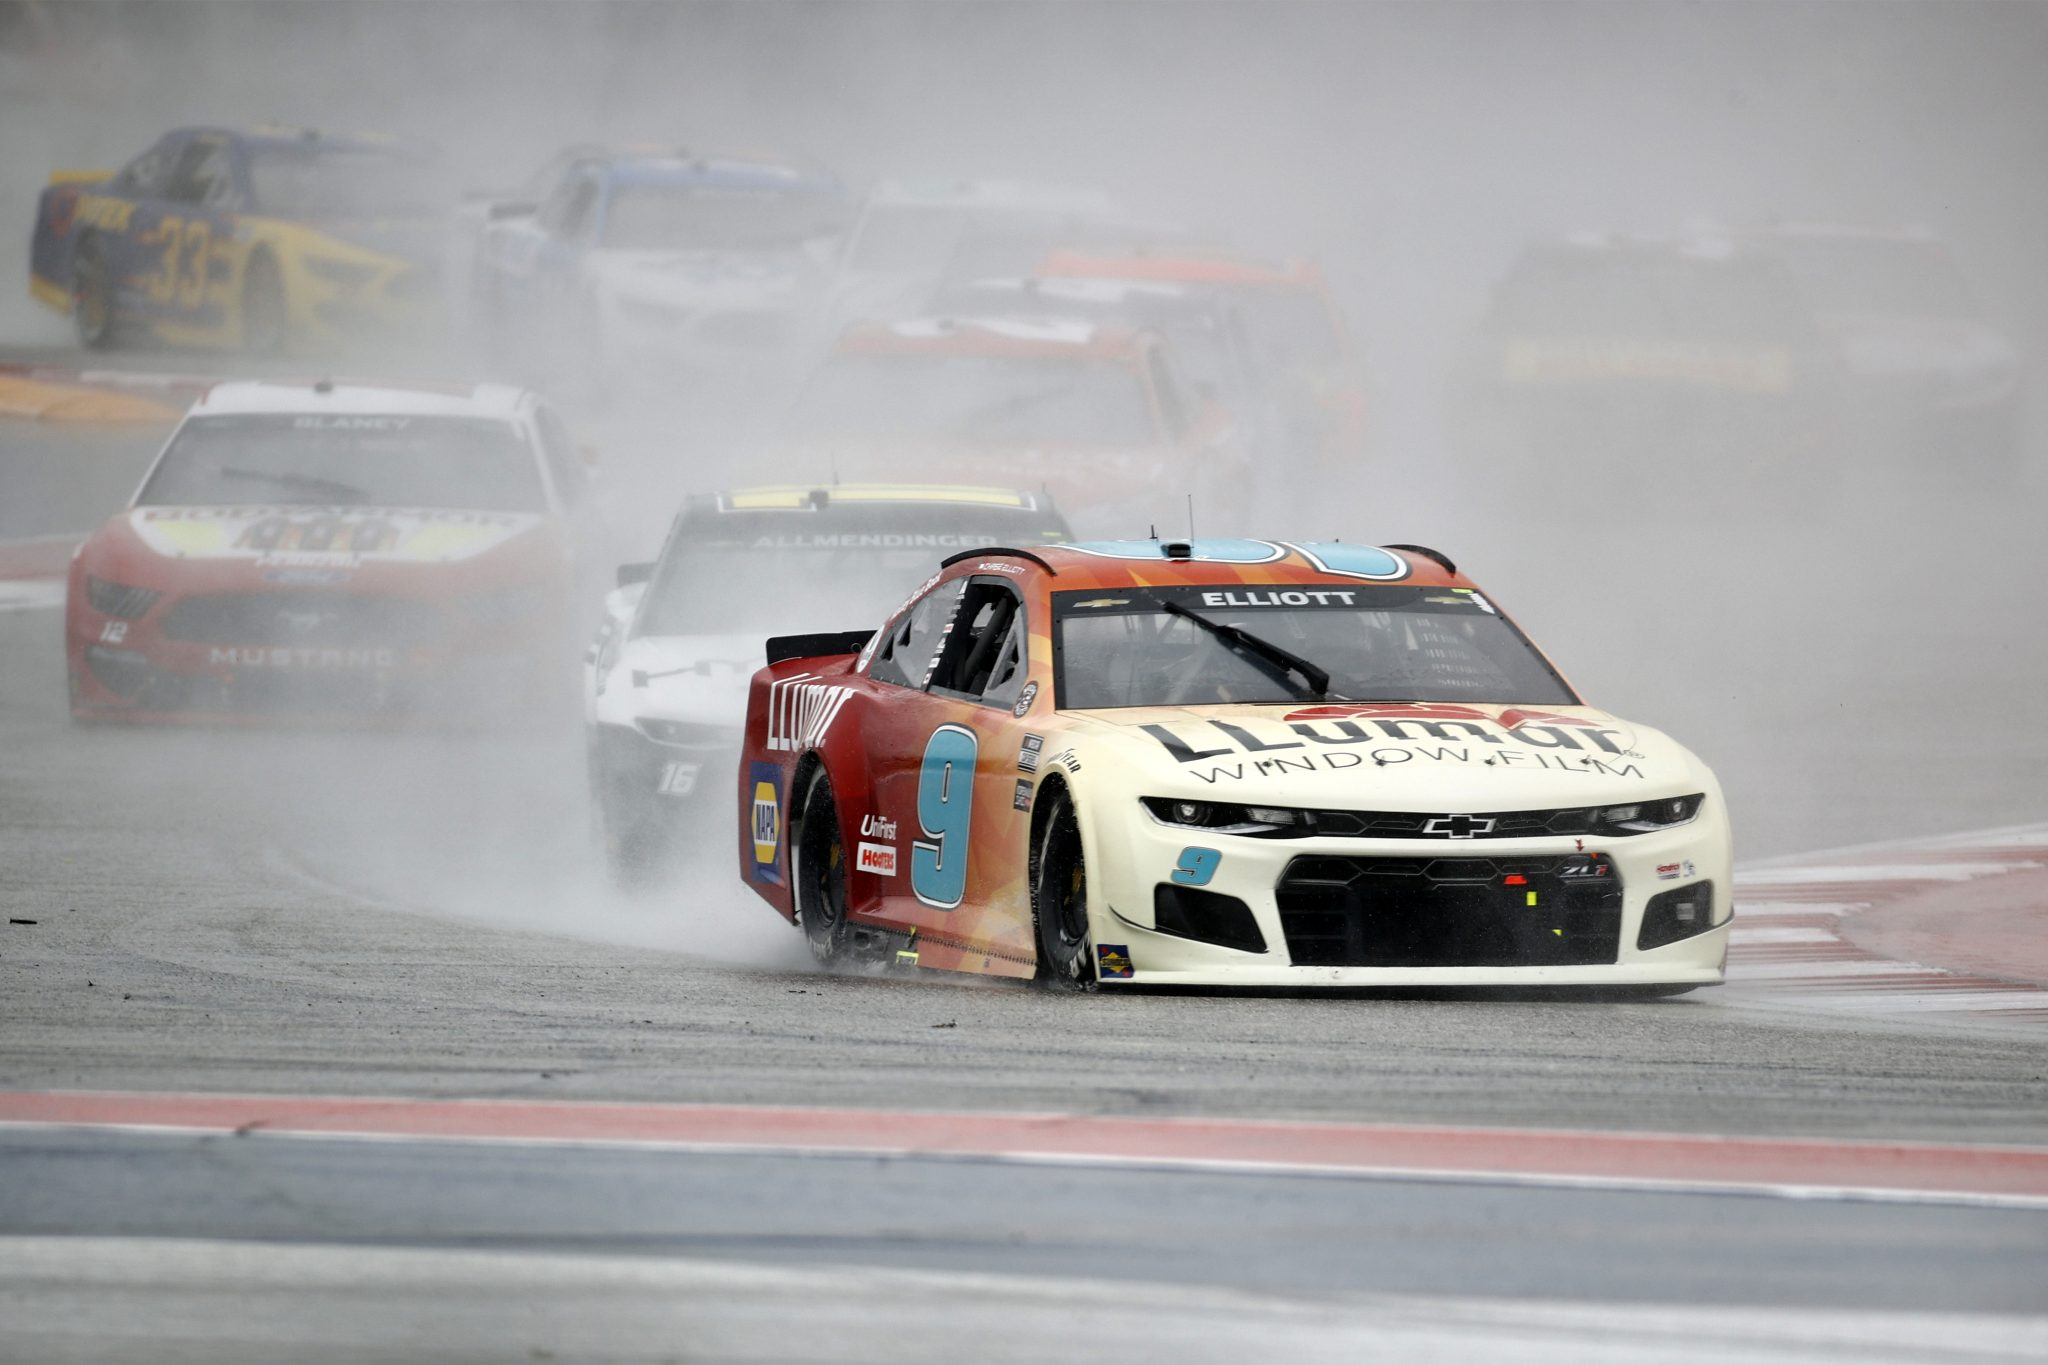 AUSTIN, TEXAS - MAY 23: Chase Elliott, driver of the #9 Llumar Chevrolet, drives during the NASCAR Cup Series EchoPark Texas Grand Prix at Circuit of The Americas on May 23, 2021 in Austin, Texas. (Photo by Jared C. Tilton/Getty Images)   Getty Images